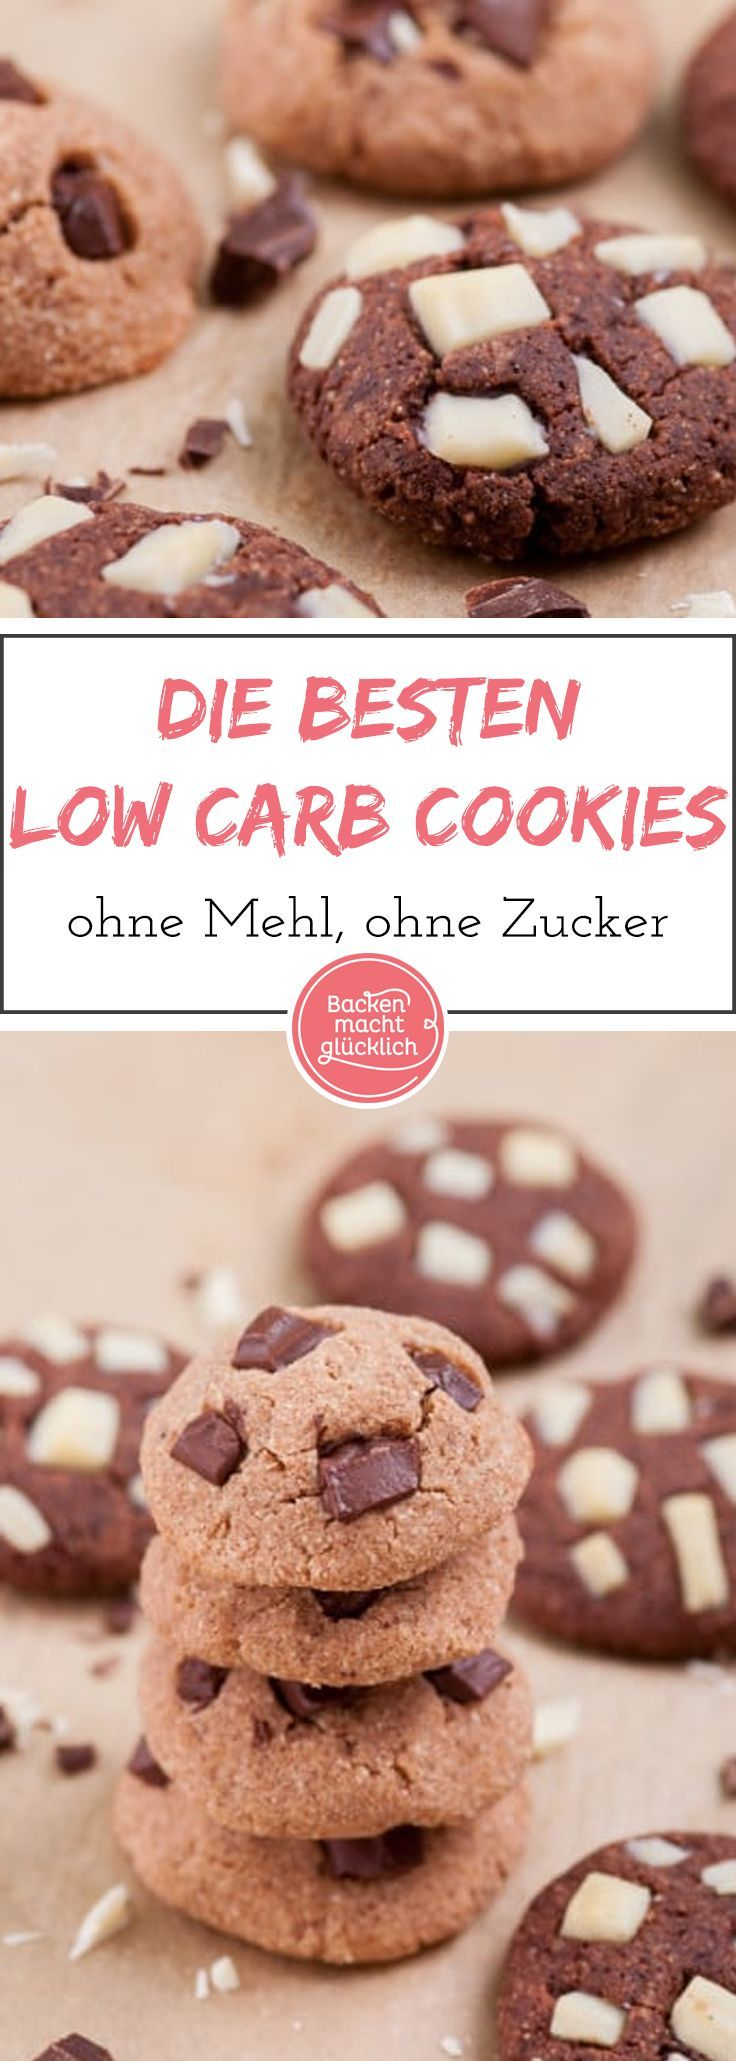 Low Carb Chocolate Cookies #lowcarbyum